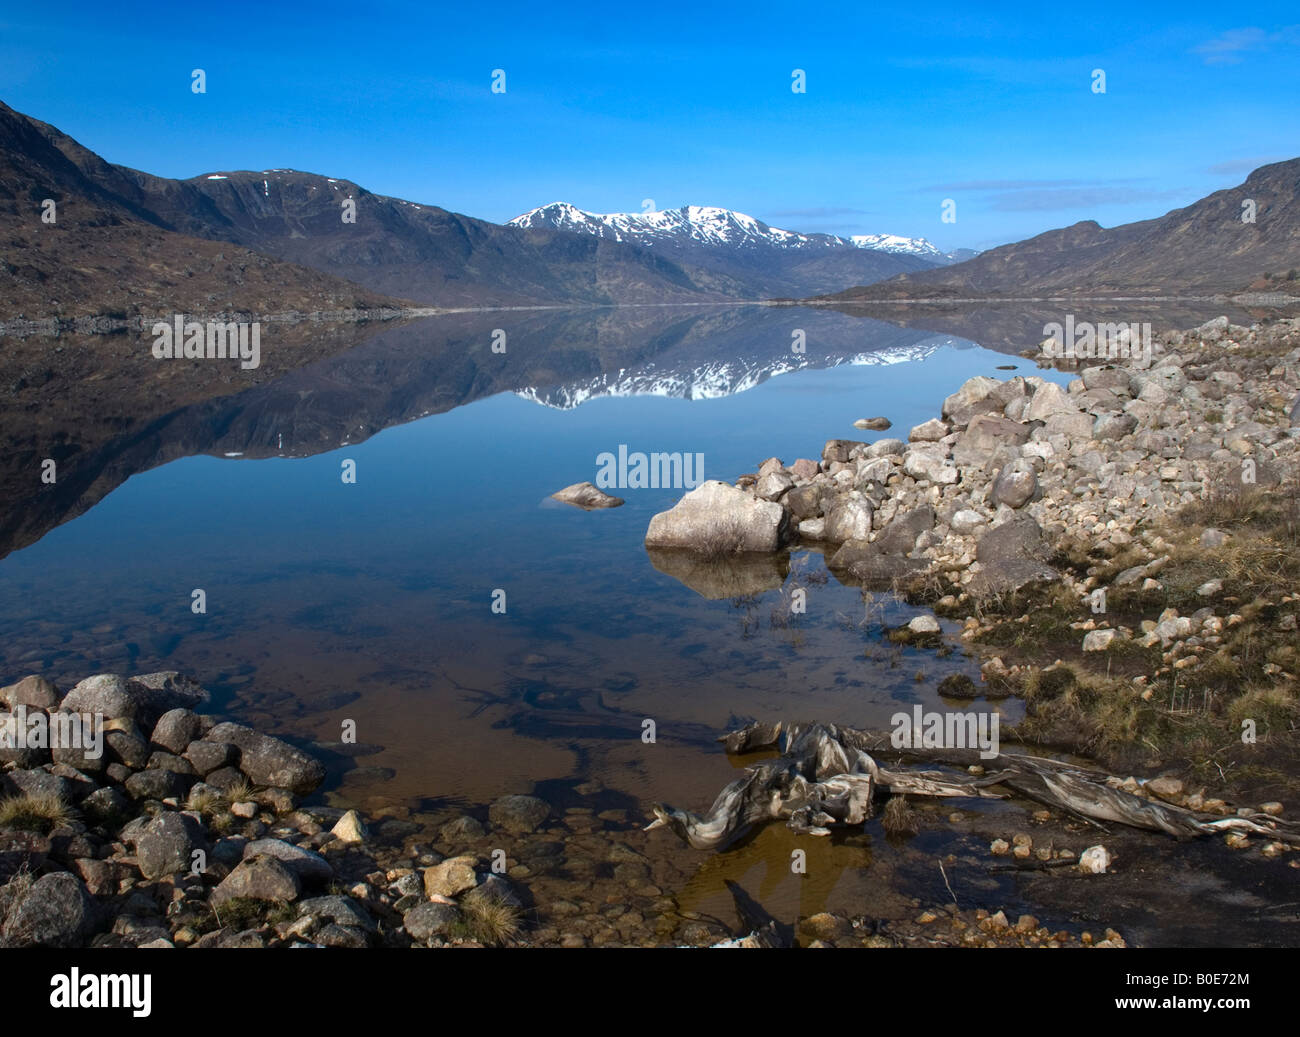 Loch Cluanie, Wester Ross, Scotland - Stock Image